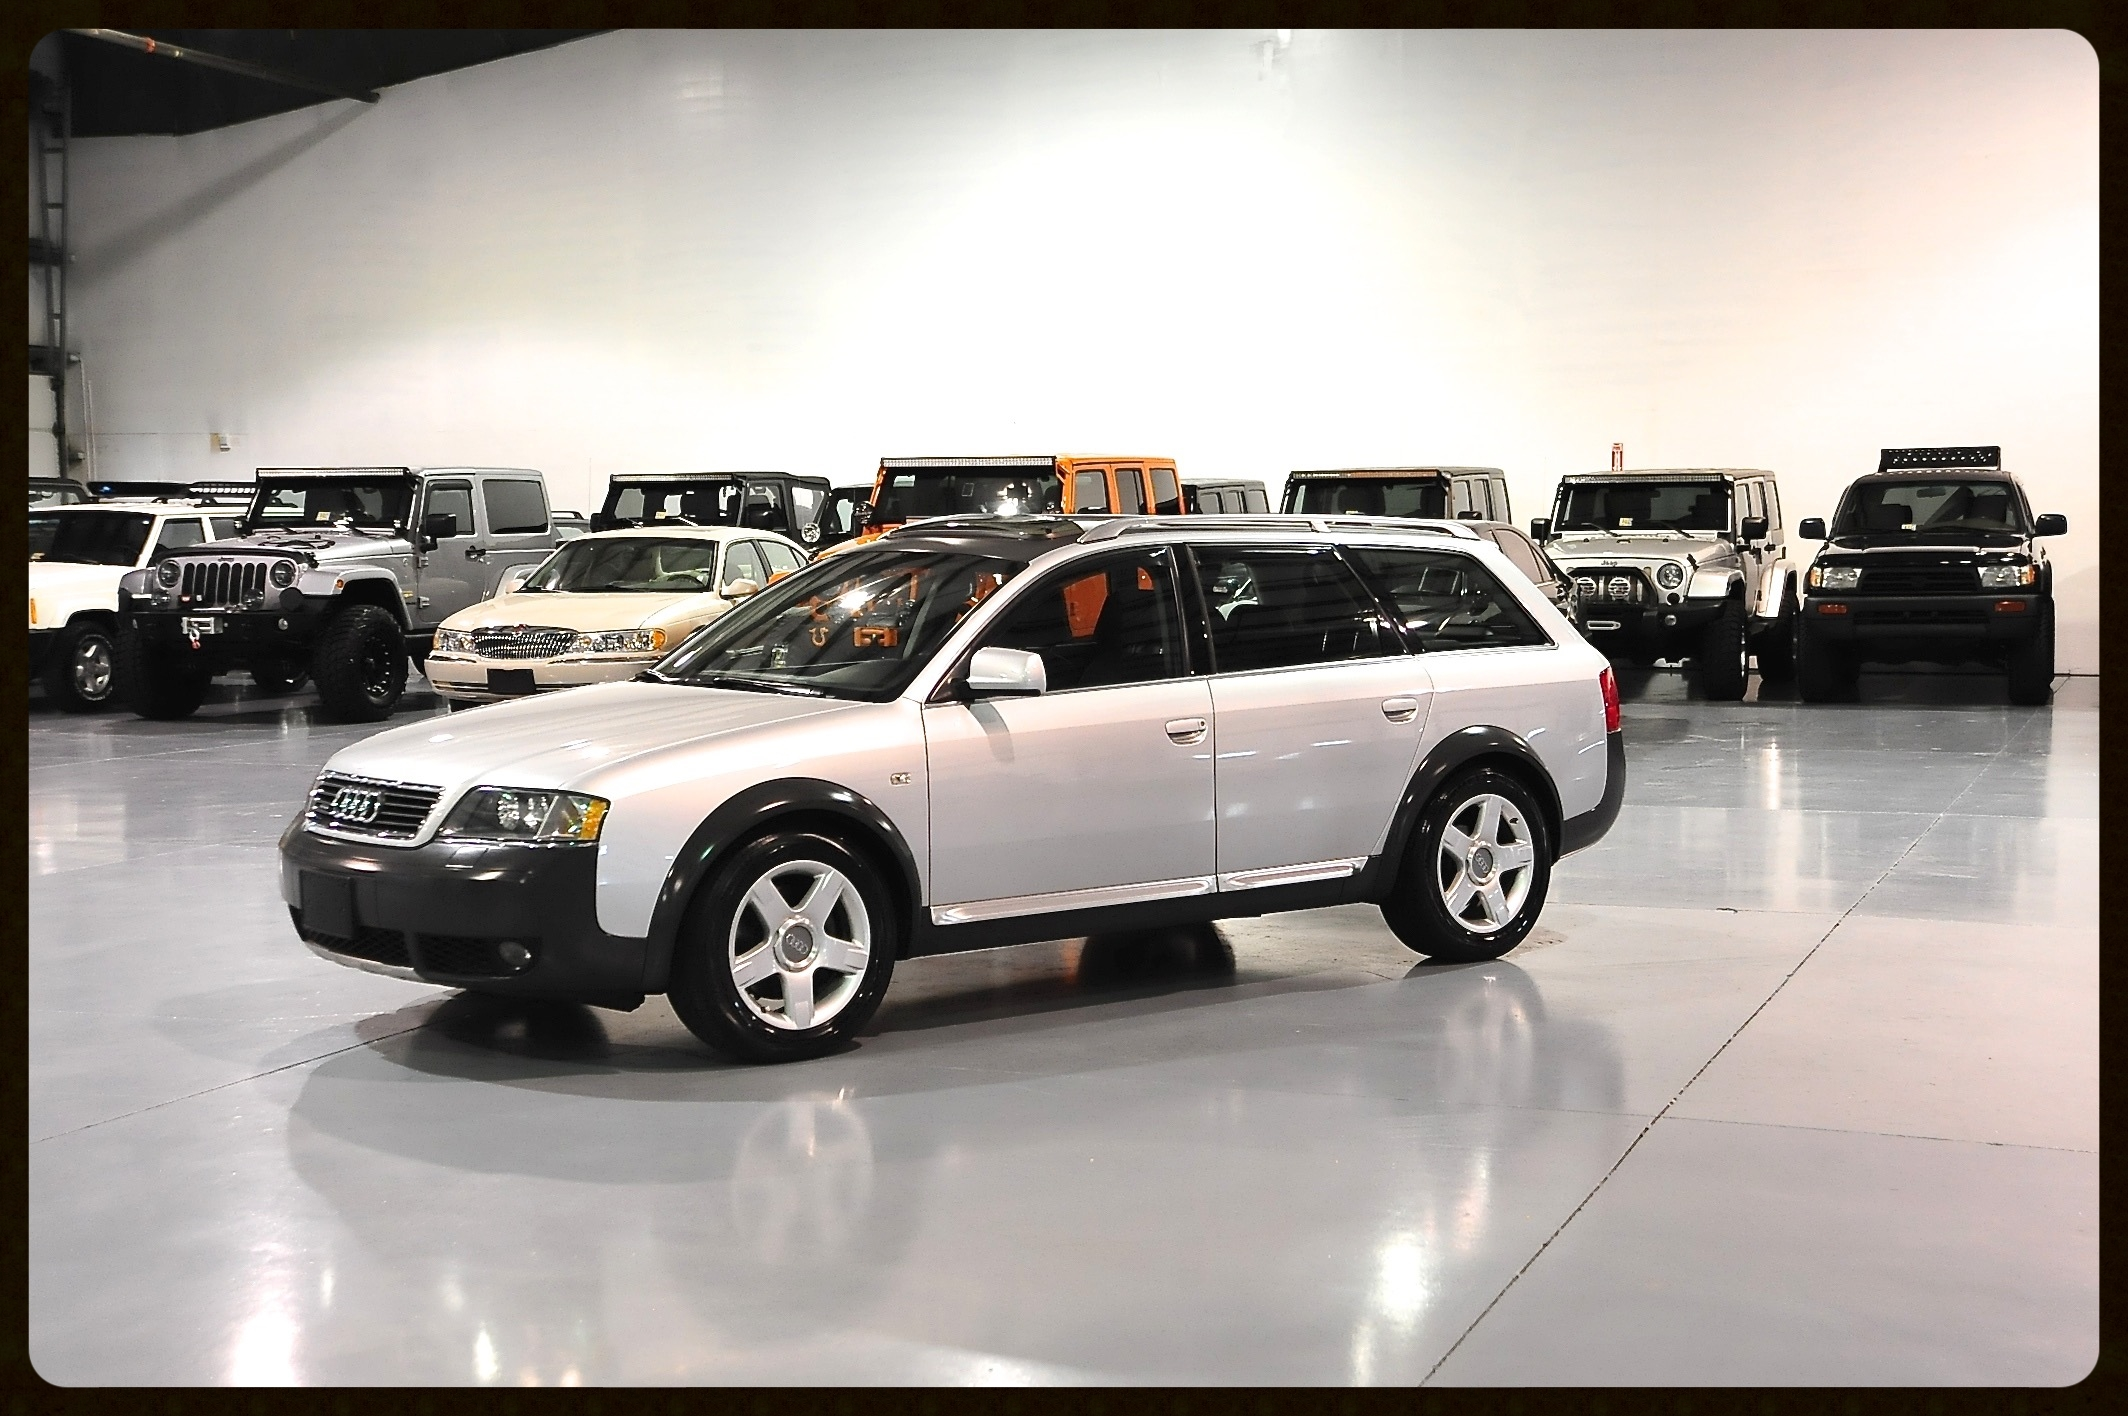 2004 Audi Allroad Twin Turbo...ONLY 34K ORIGINAL MILES...Lowest Mileage B5 Allroad in the Entire Country...Car is Literally Like New